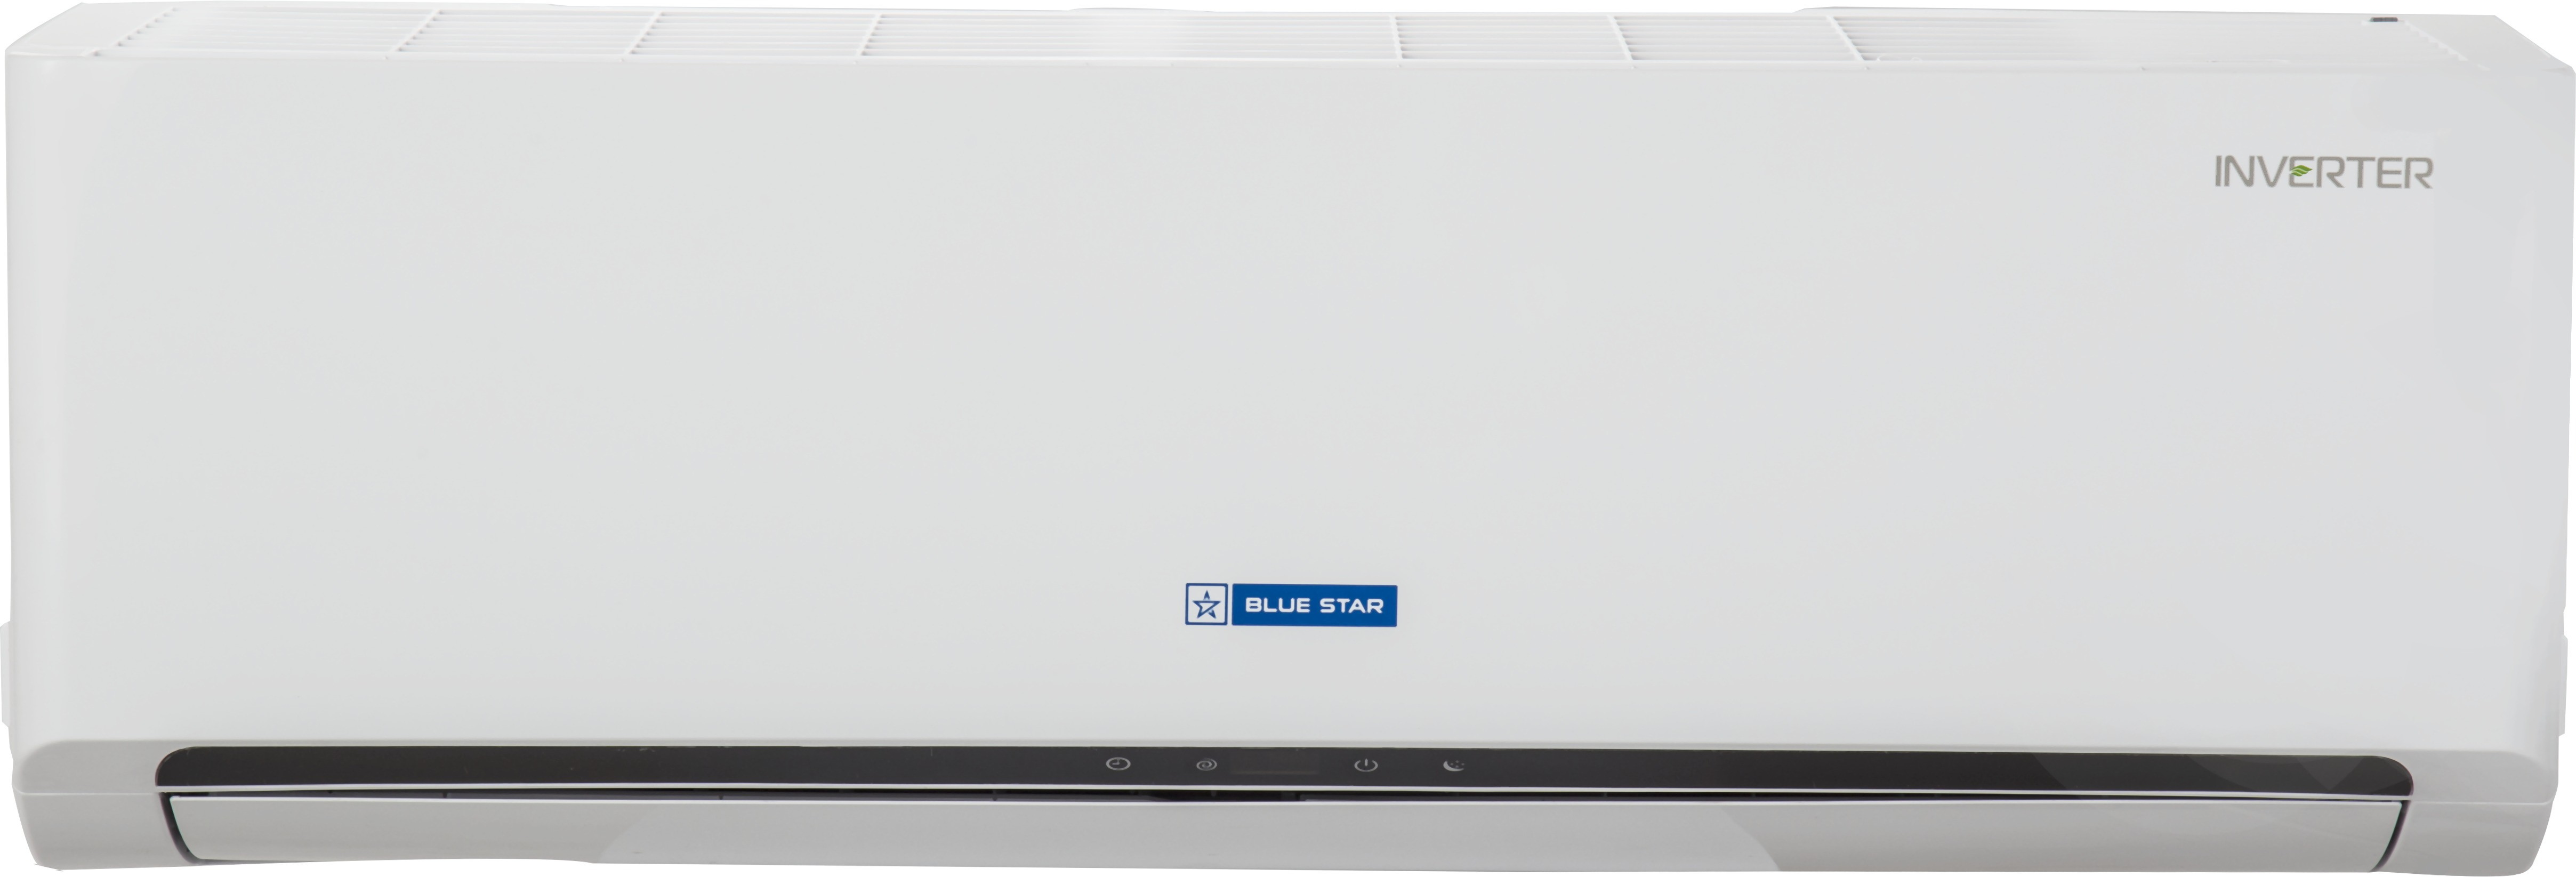 Blue Star BI-3CNHW18WAFU/BO-3CNHW18WAFU 1.5 Ton 3 Star BEE Rating 2018 Inverter AC Image